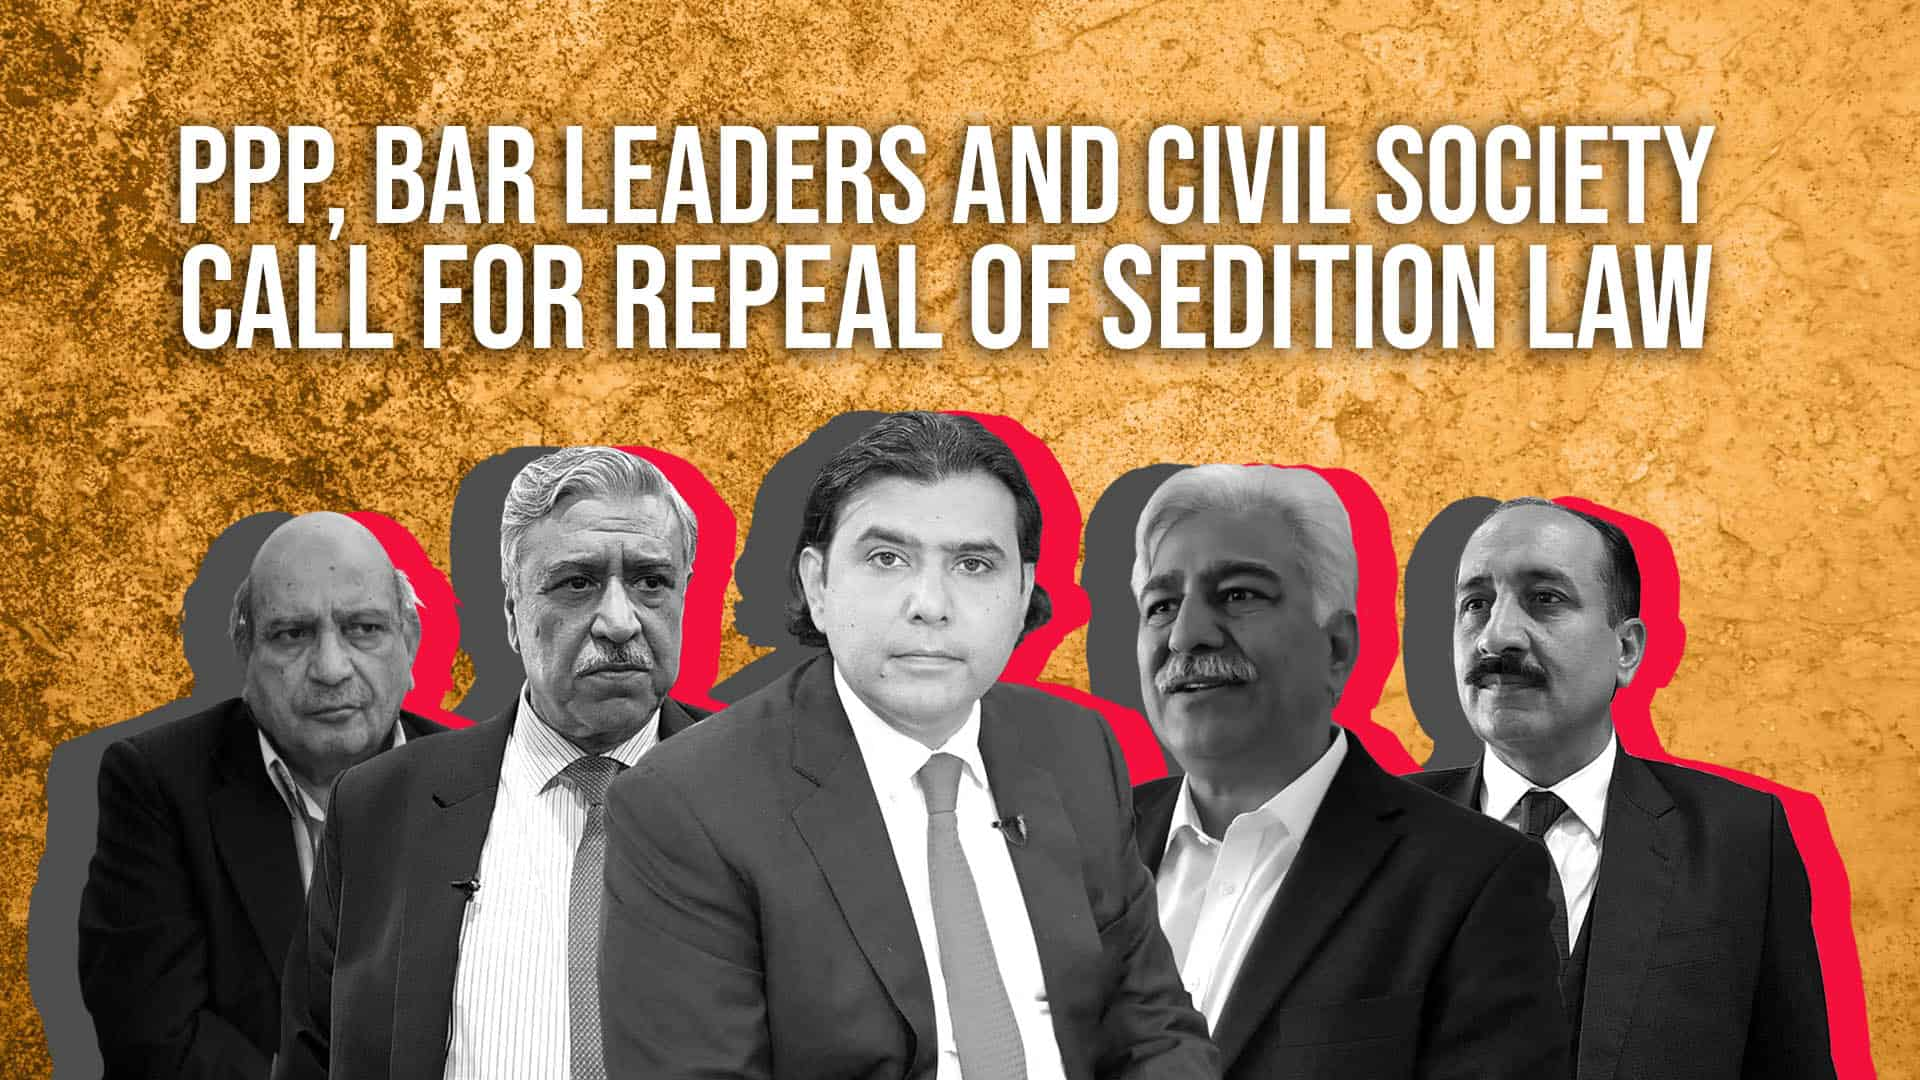 PPP, Bar Leaders & Civil Society on Repealing Sedition Laws